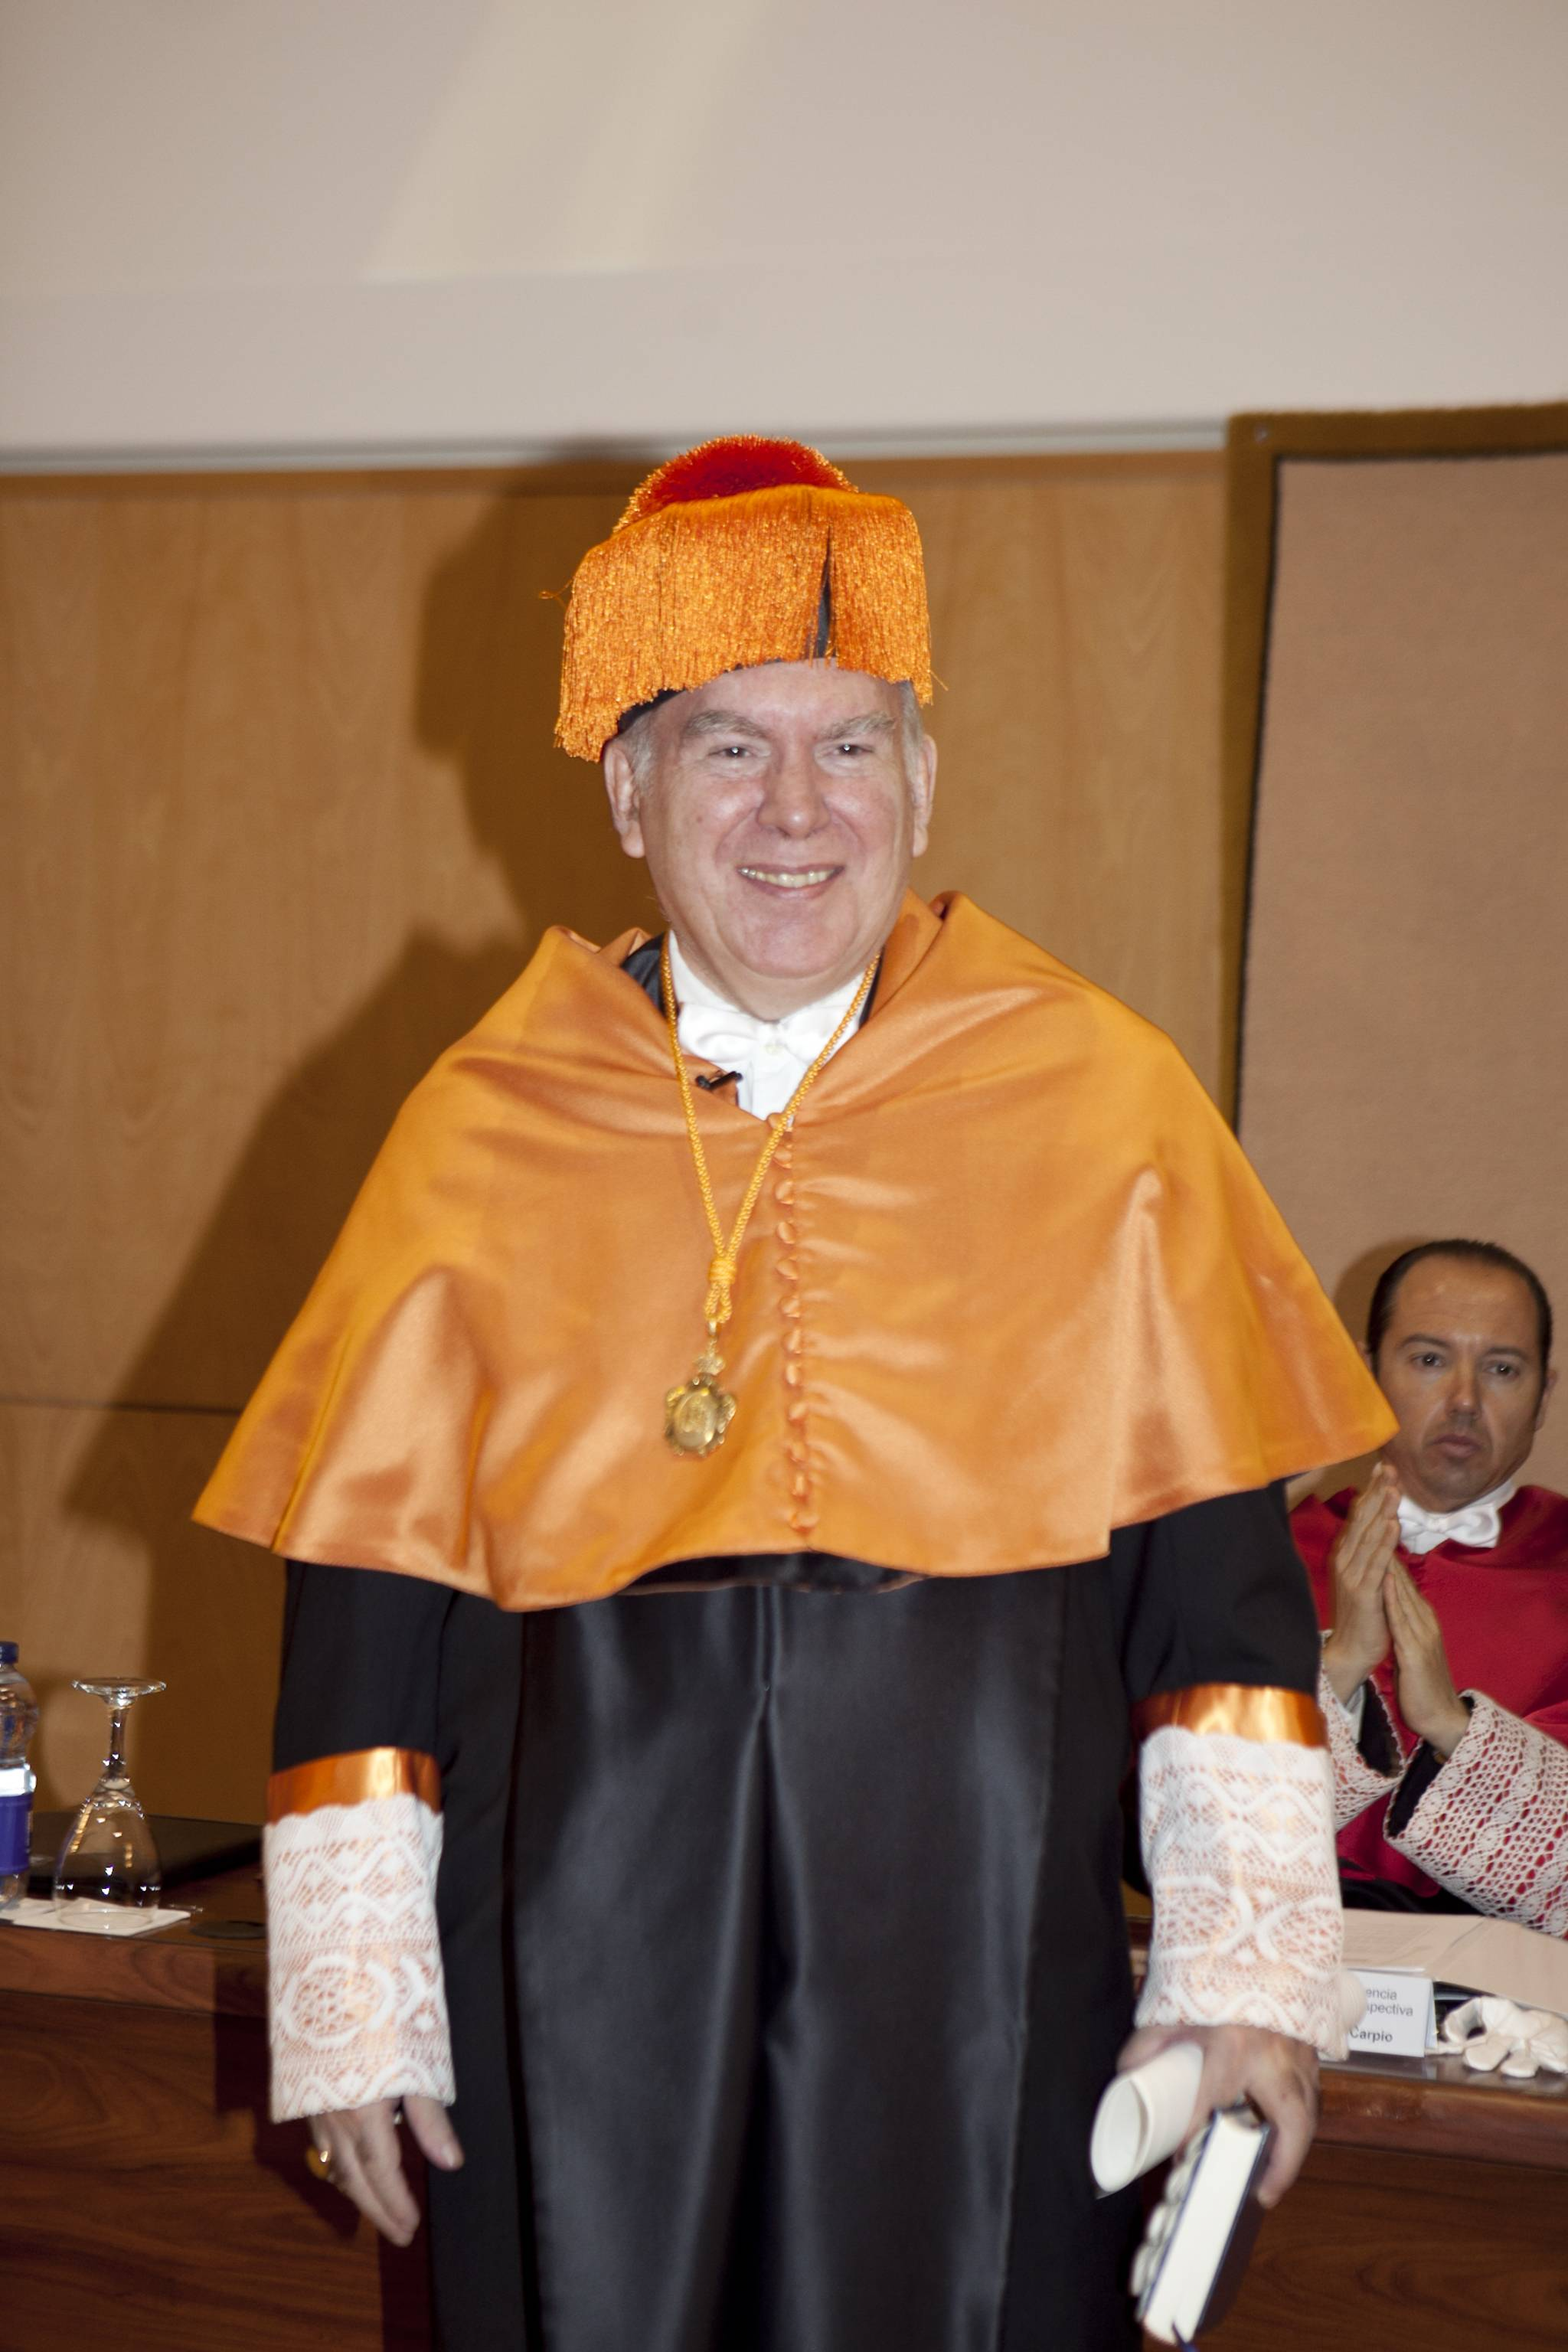 doctor-honoris-causa-luis-gamir_mg_0813.jpg